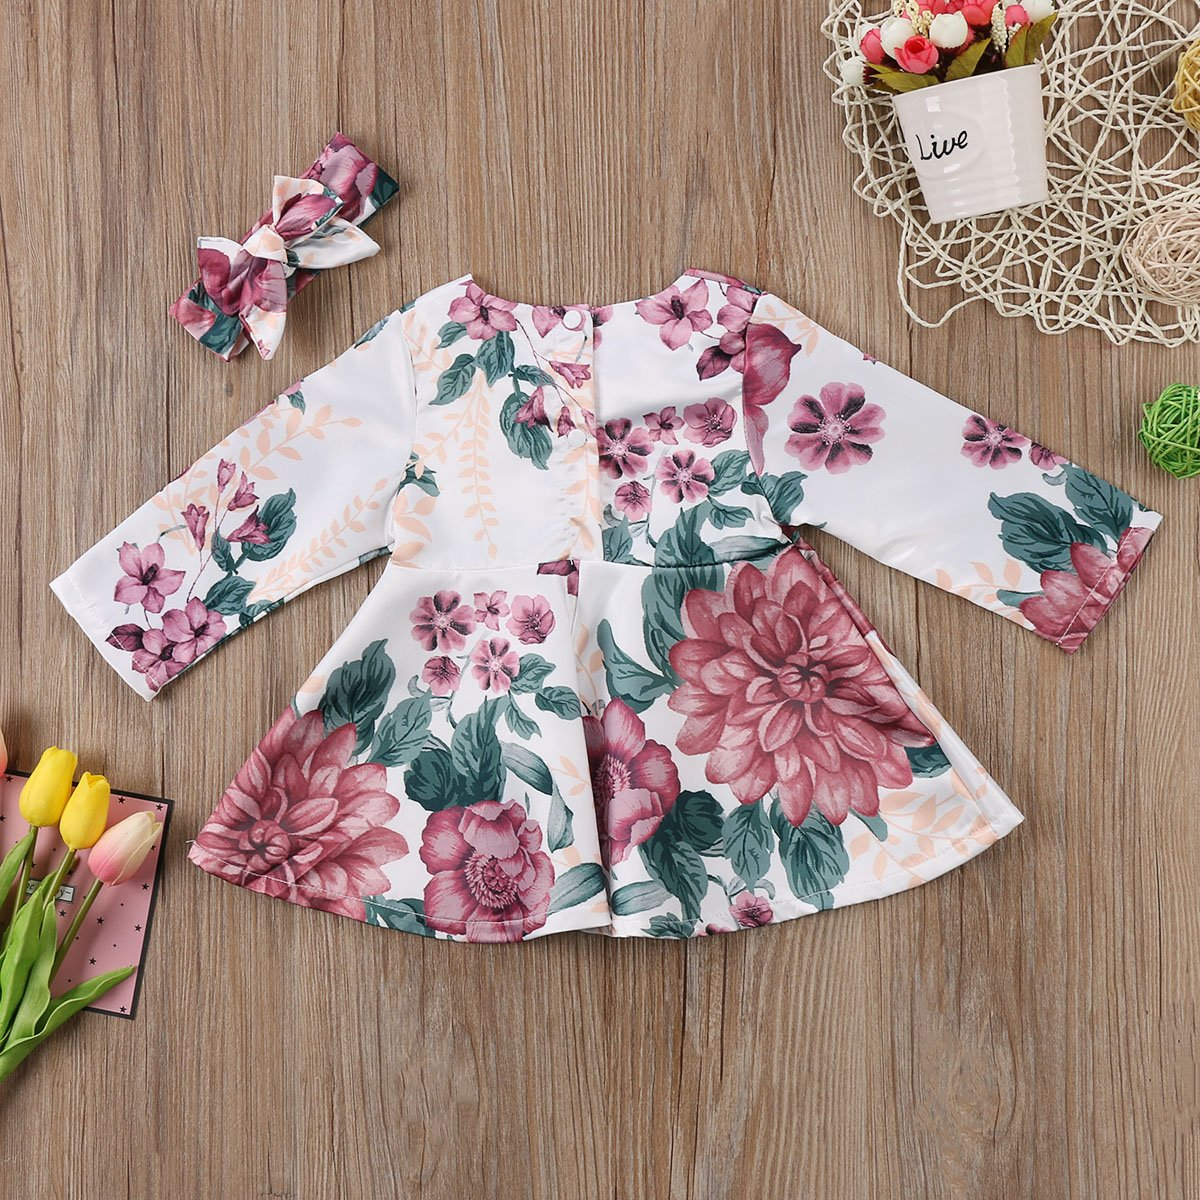 Infant Toddler Baby Girls Boho Floral Dress Long Sleeve with Headband